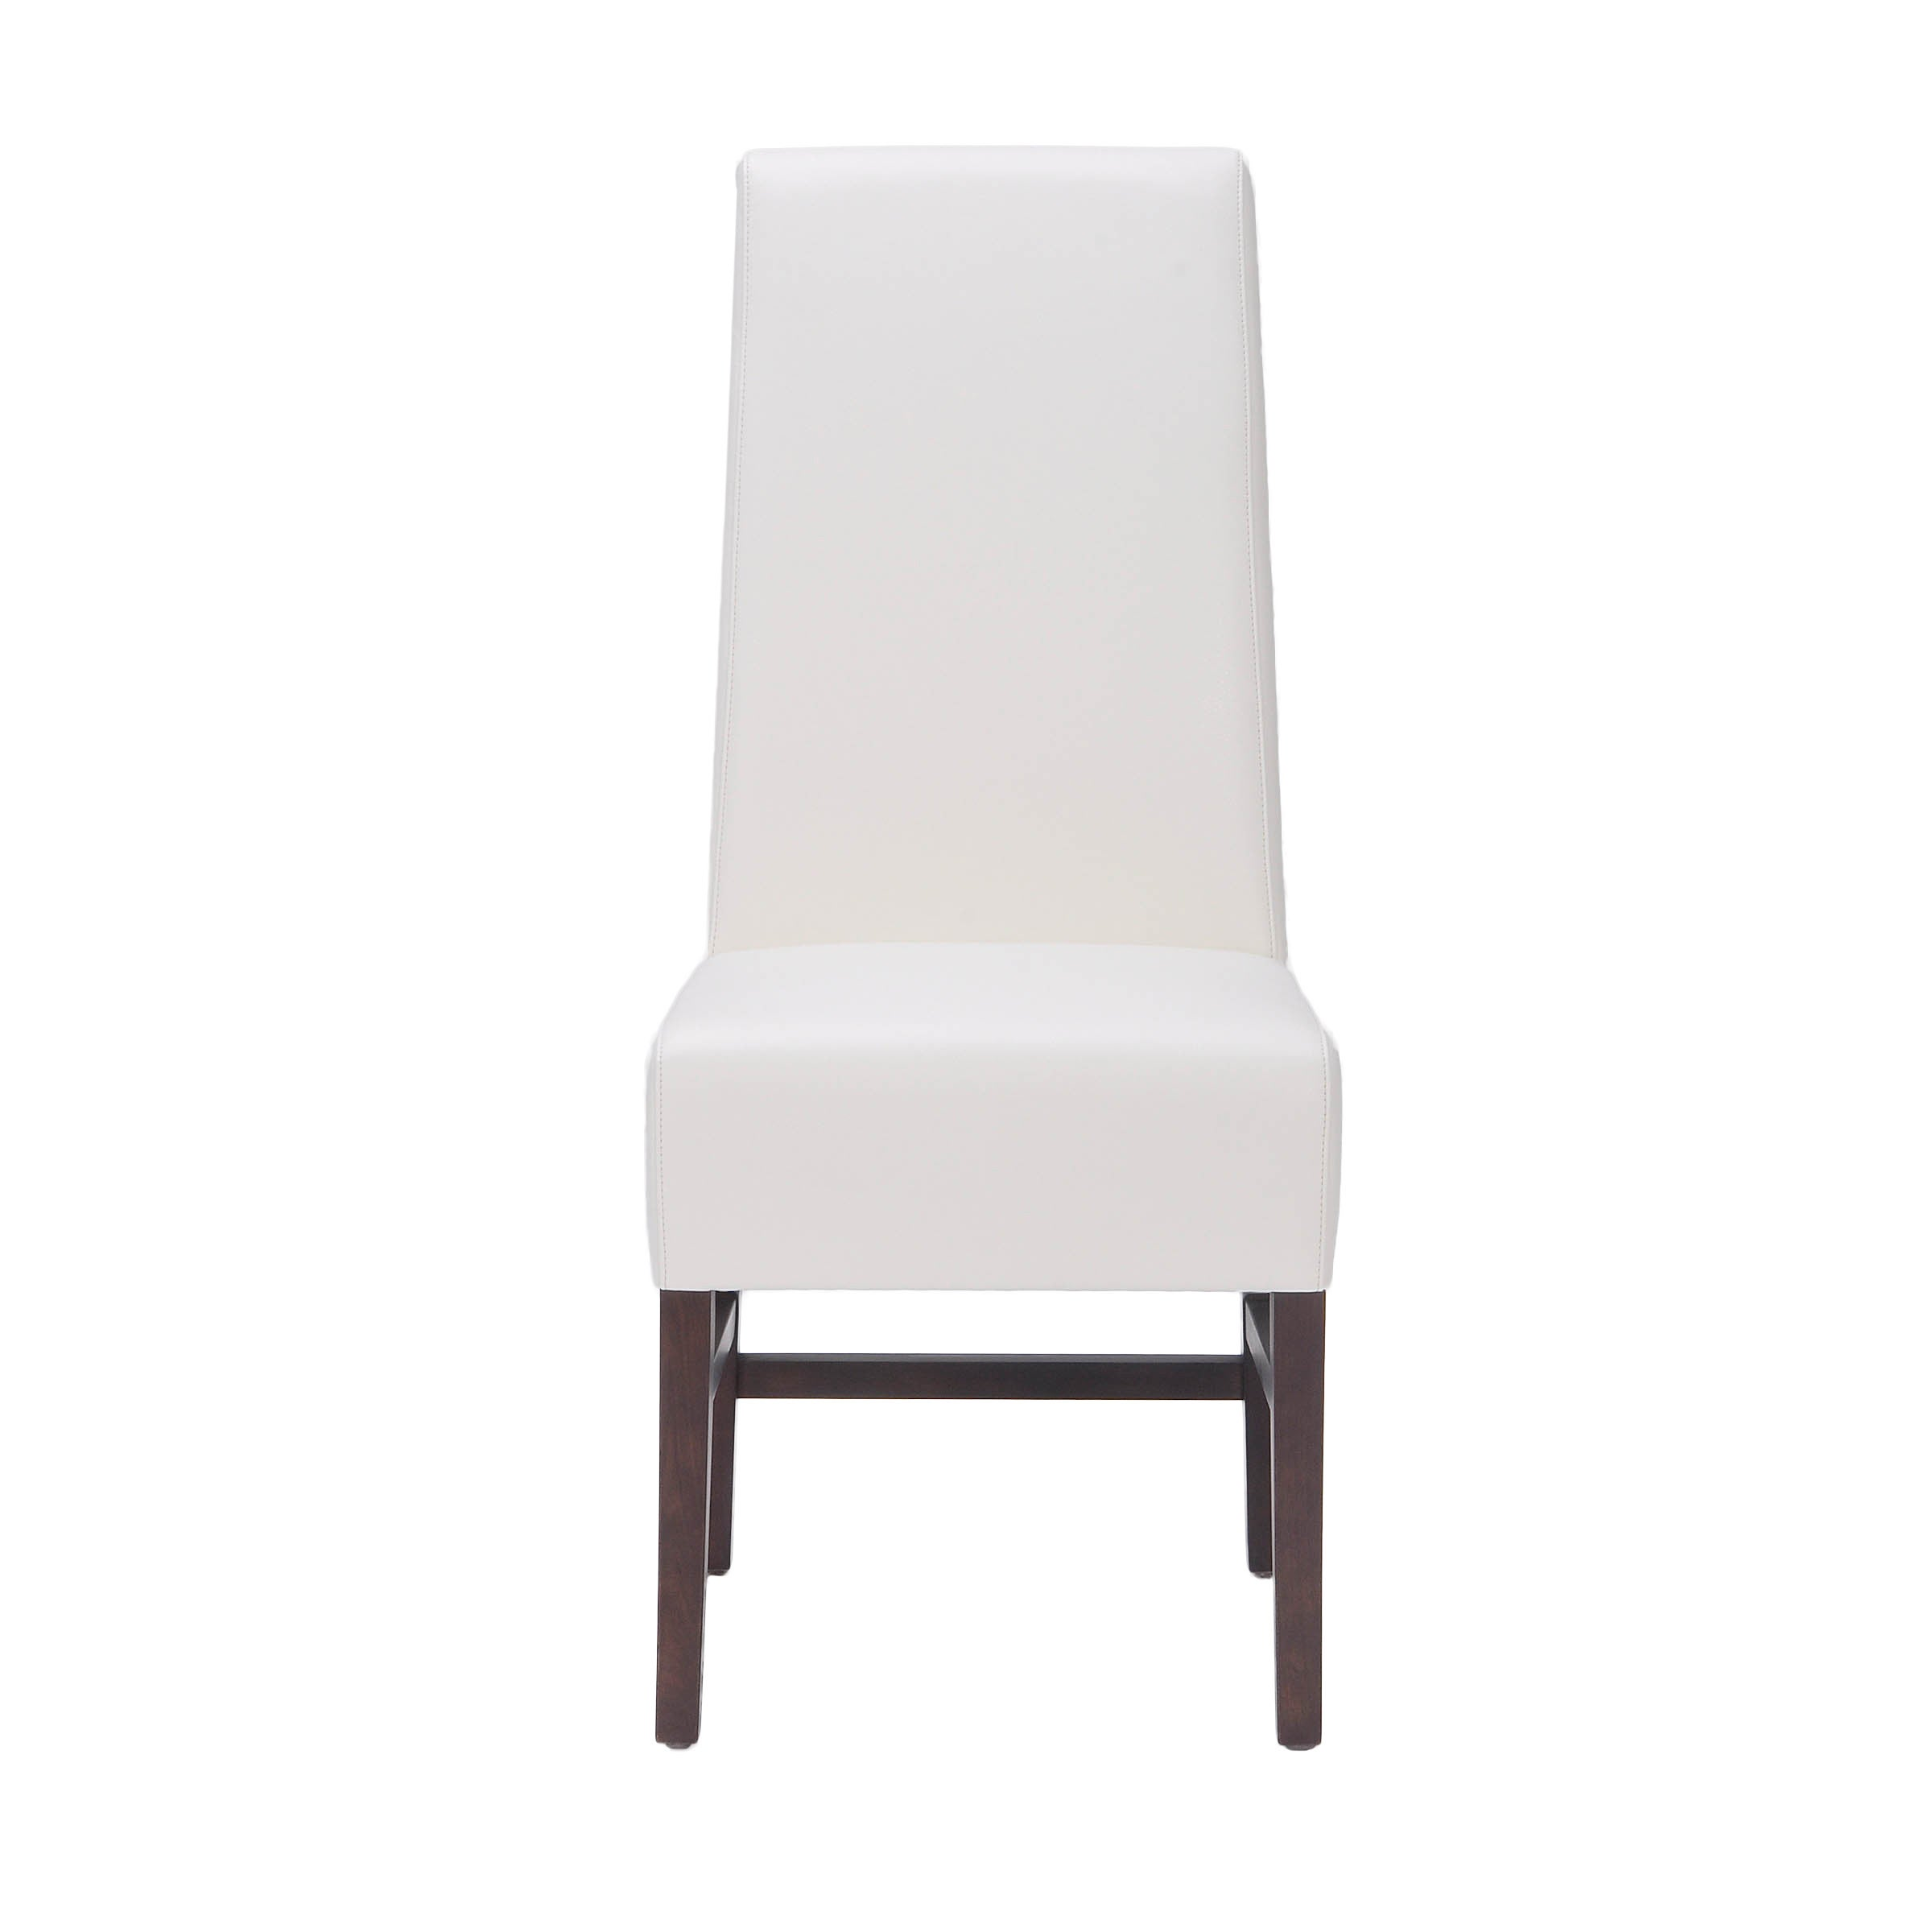 Shop Sunpan u00275Westu0027 Habitat Upholstered Dining Chairs (Set of 2) - Free Shipping Today - Overstock.com - 9219422  sc 1 st  Overstock.com & Shop Sunpan u00275Westu0027 Habitat Upholstered Dining Chairs (Set of 2 ...